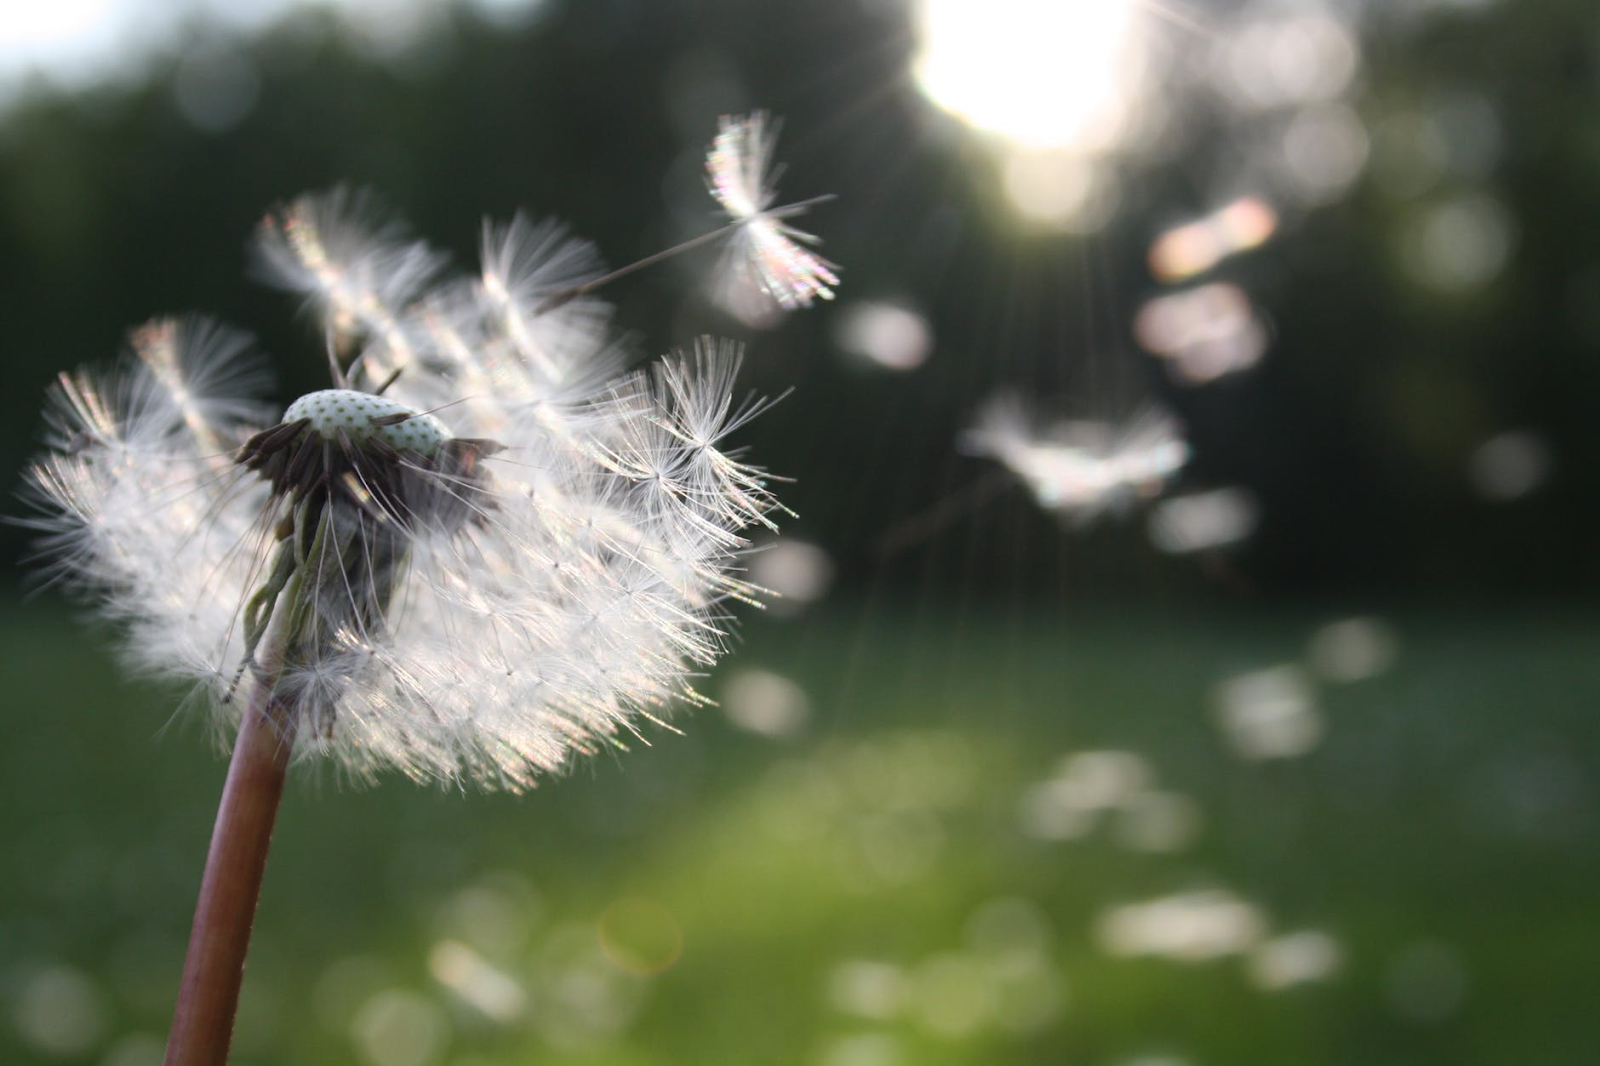 dandelion plant & seeds in air